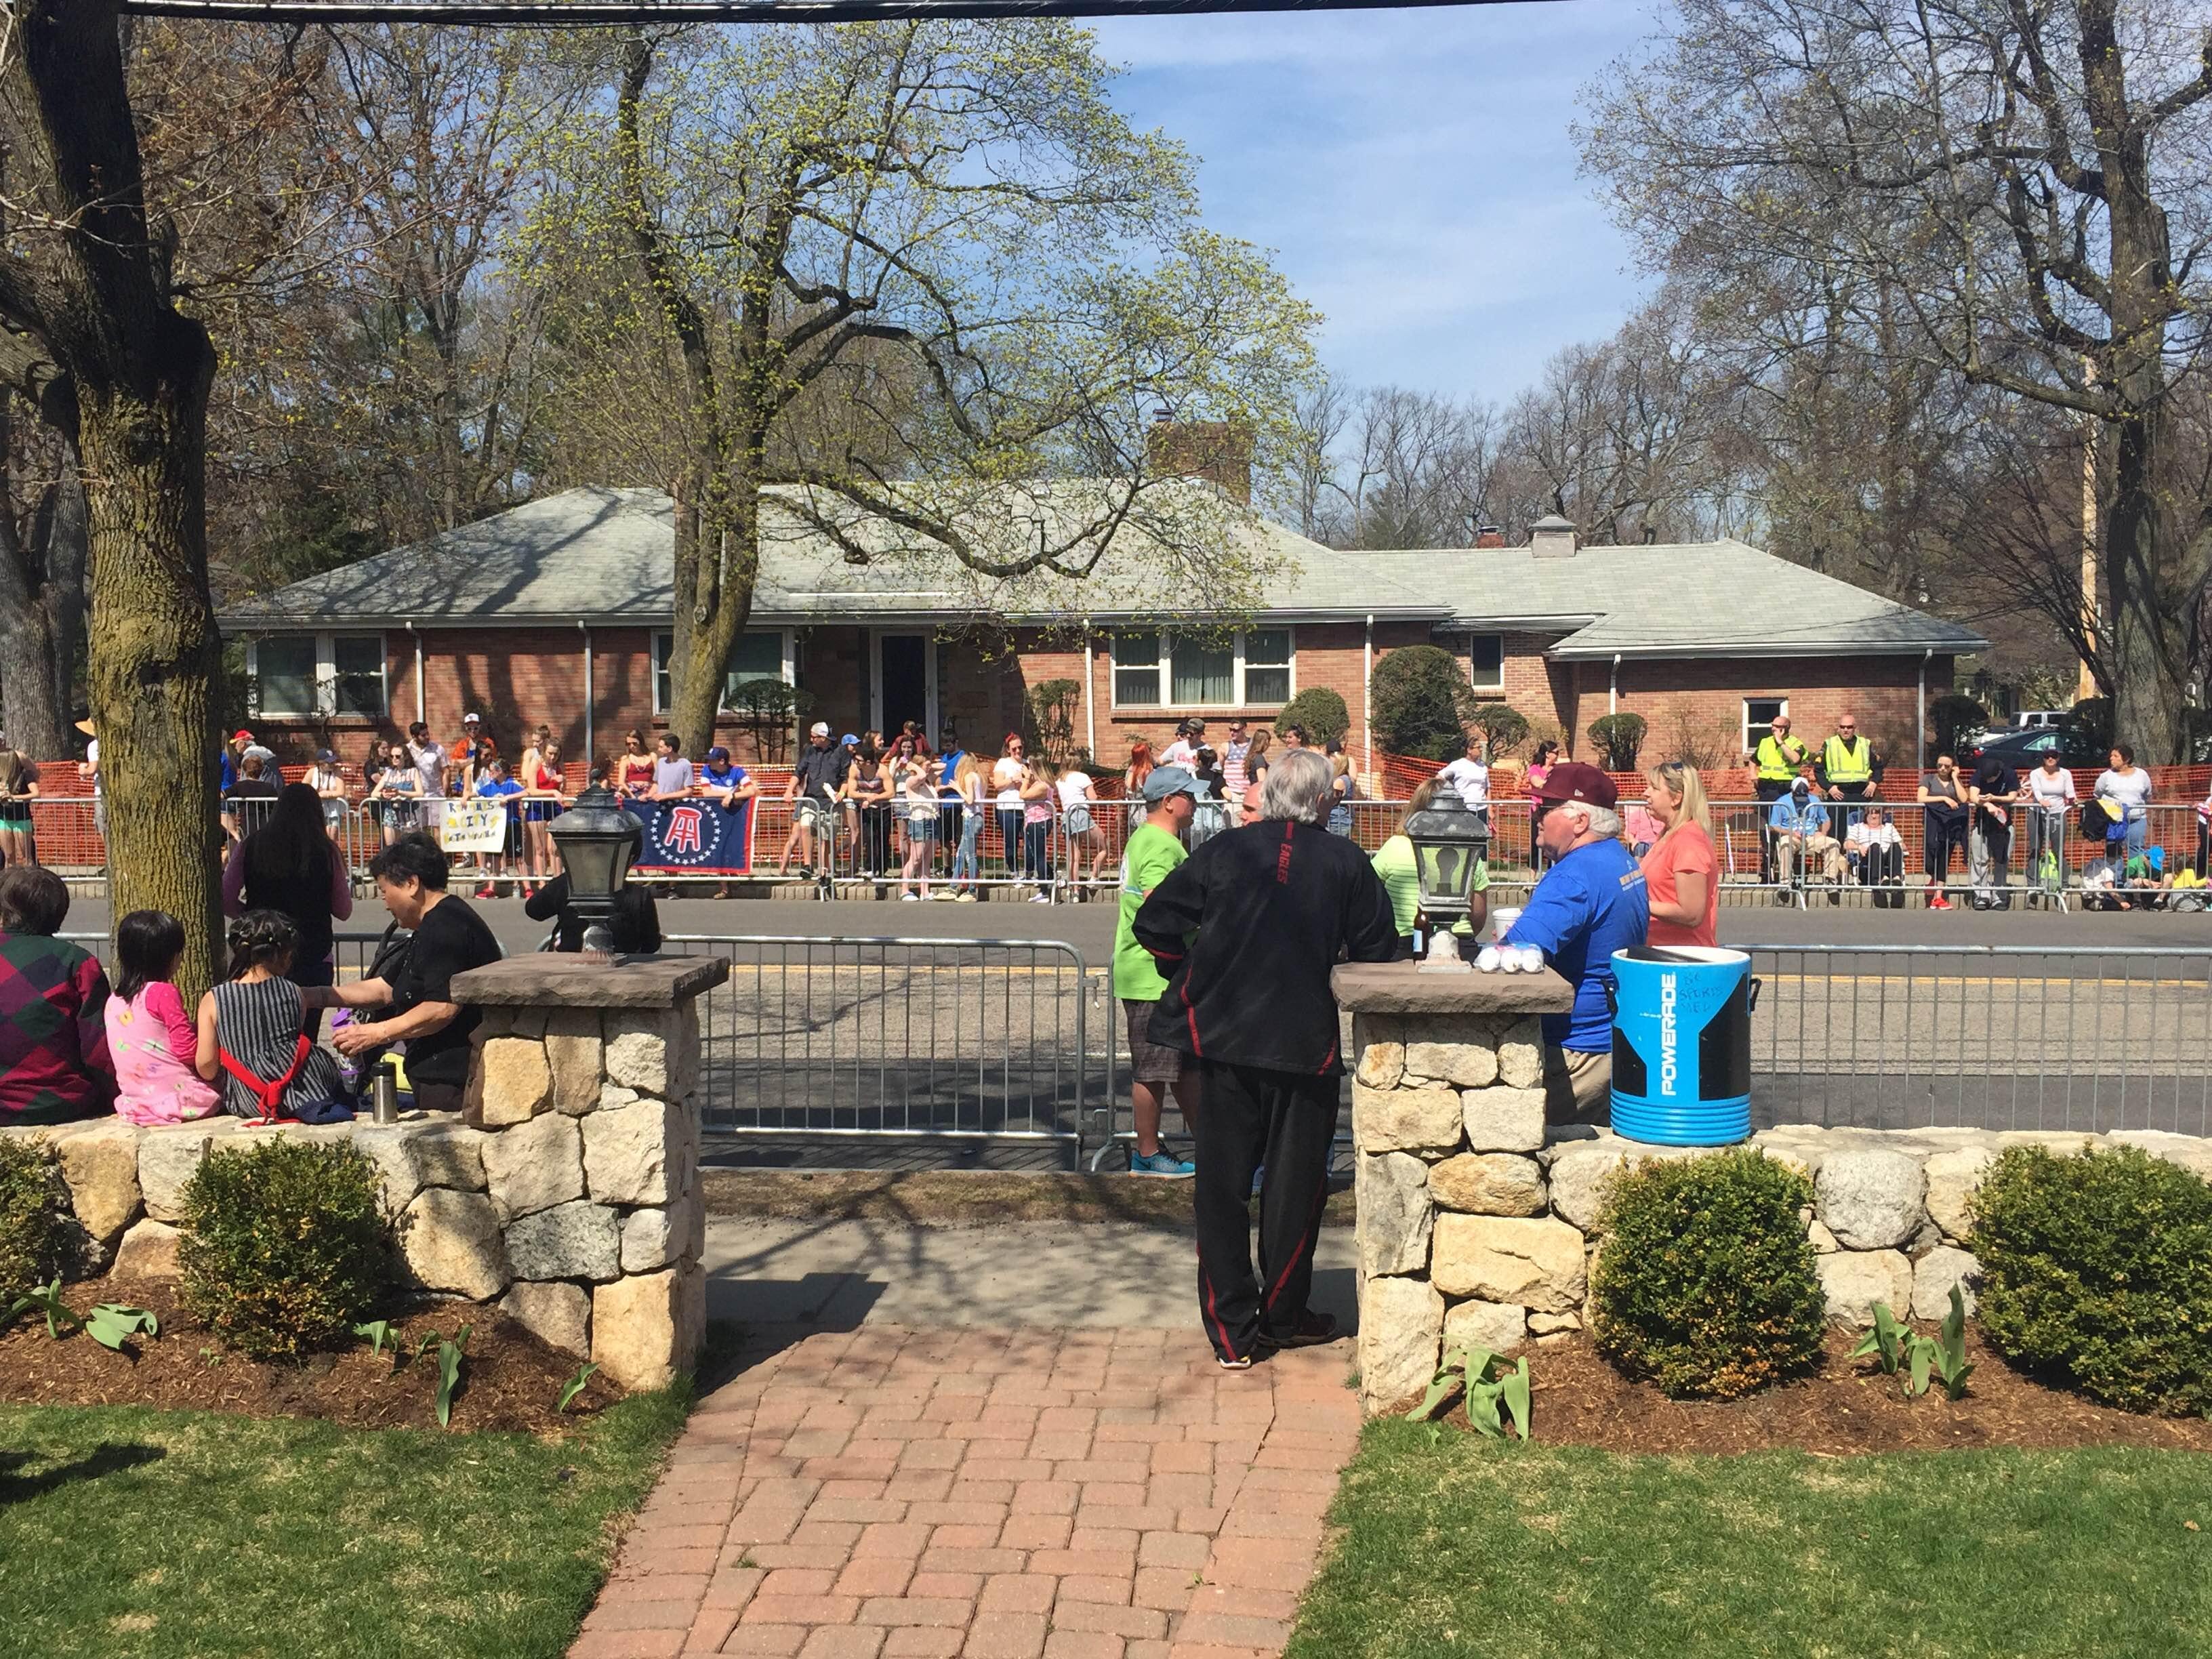 The view of the Boston Marathon route from Alison Foley's house in Newton, where she hosts an annual marathon party.